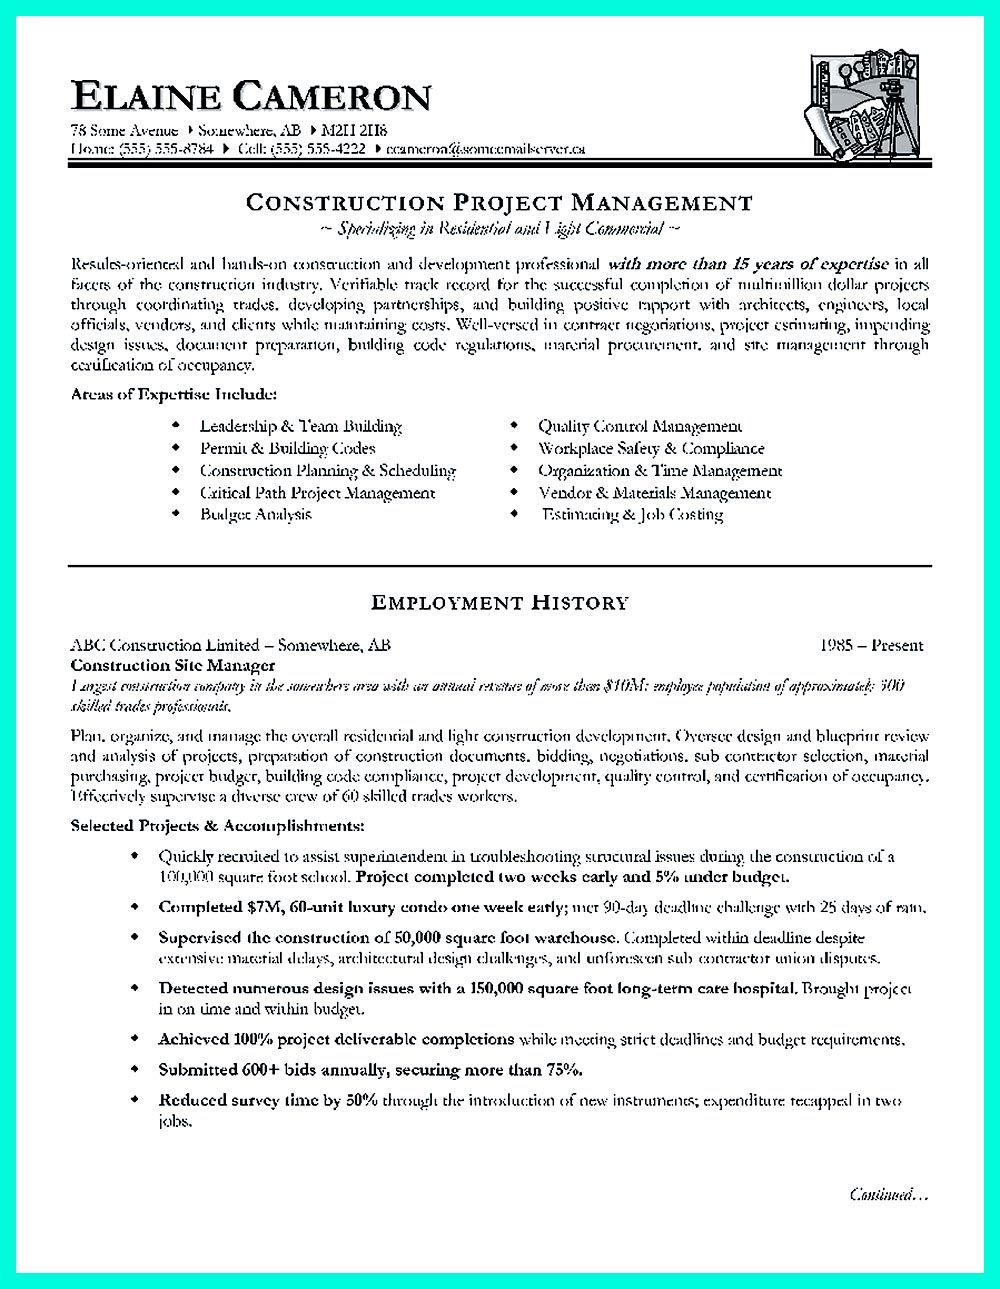 Project Management Resume Construction Project Manager Resume For Experienced One Must Be